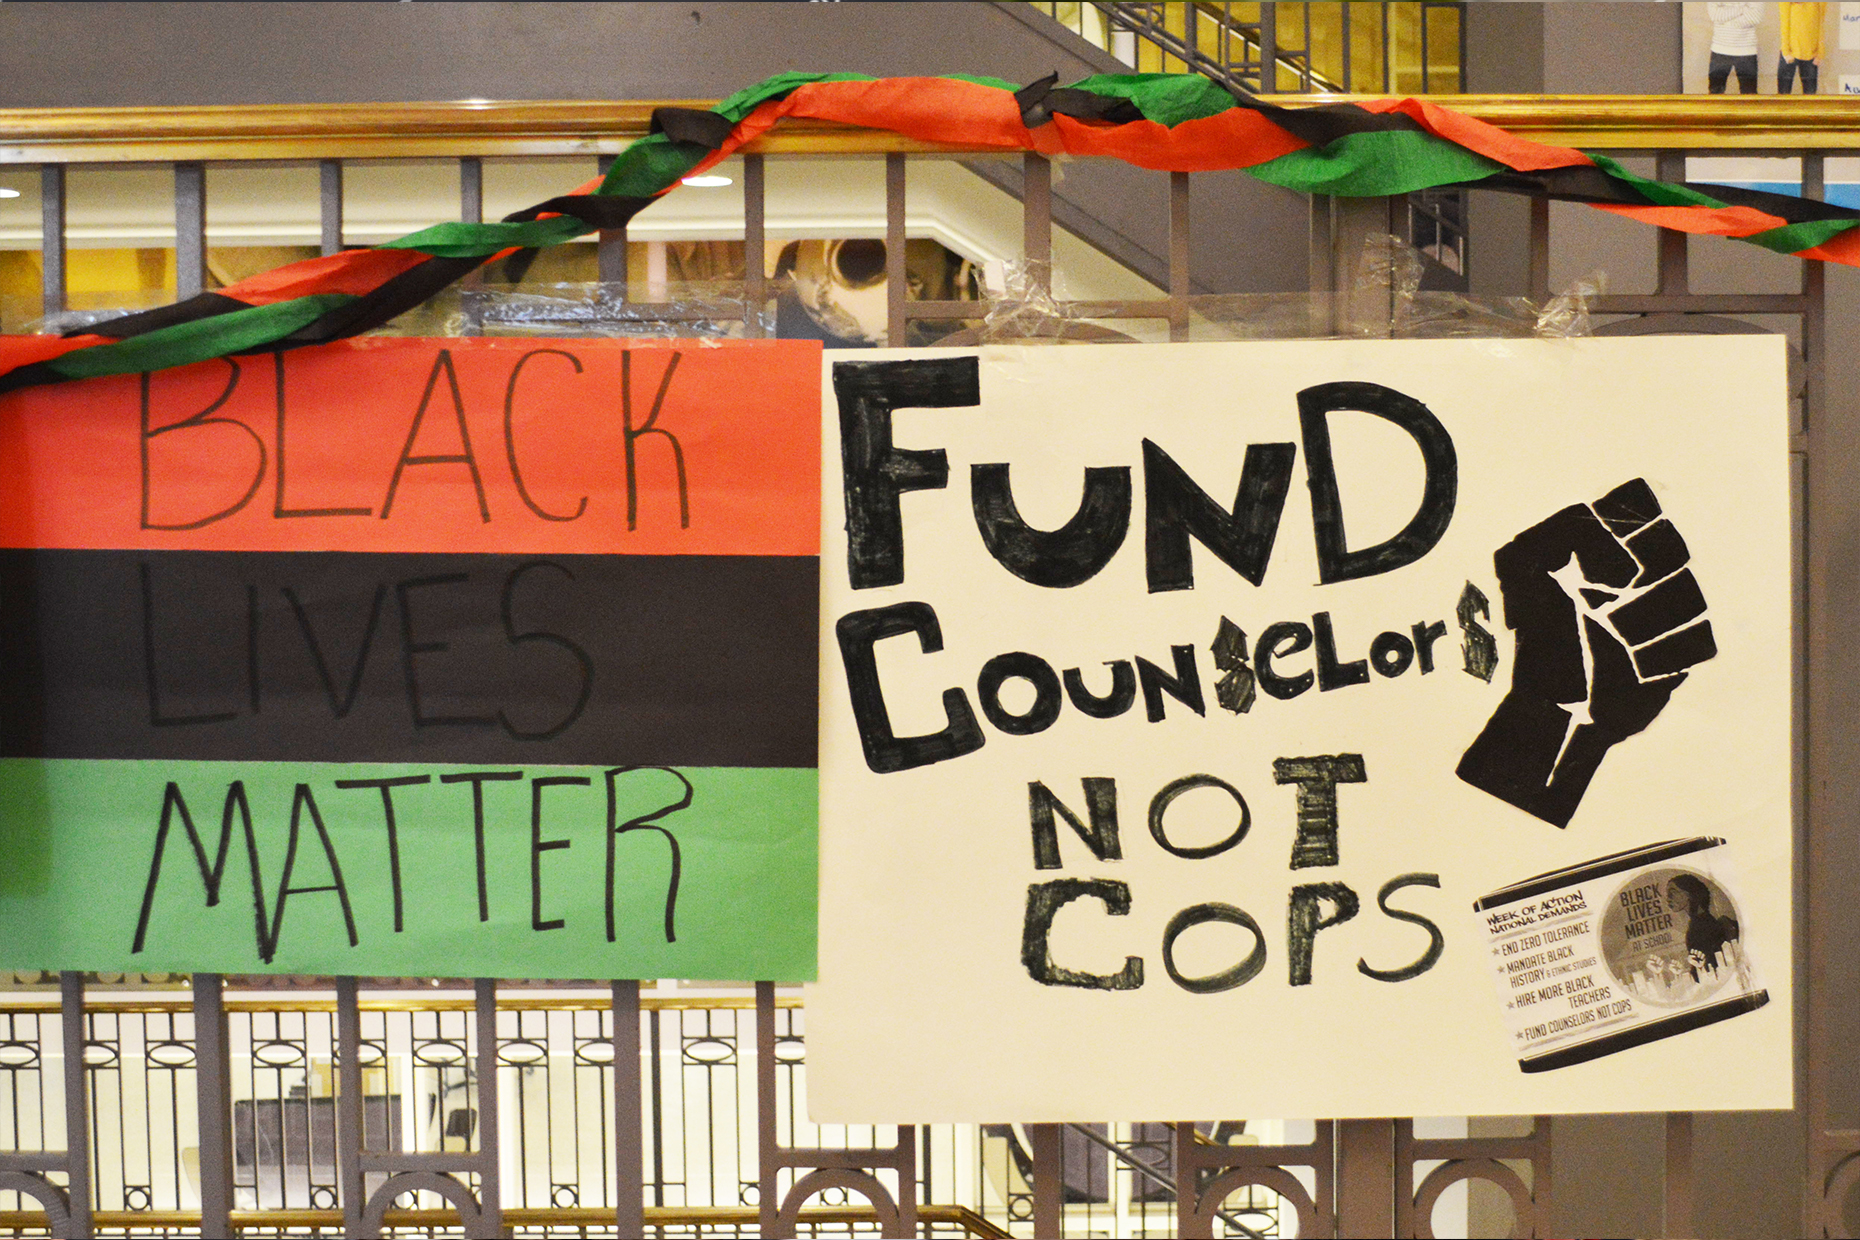 Handmade posters of protest supporting the Black Lives Matter movement.